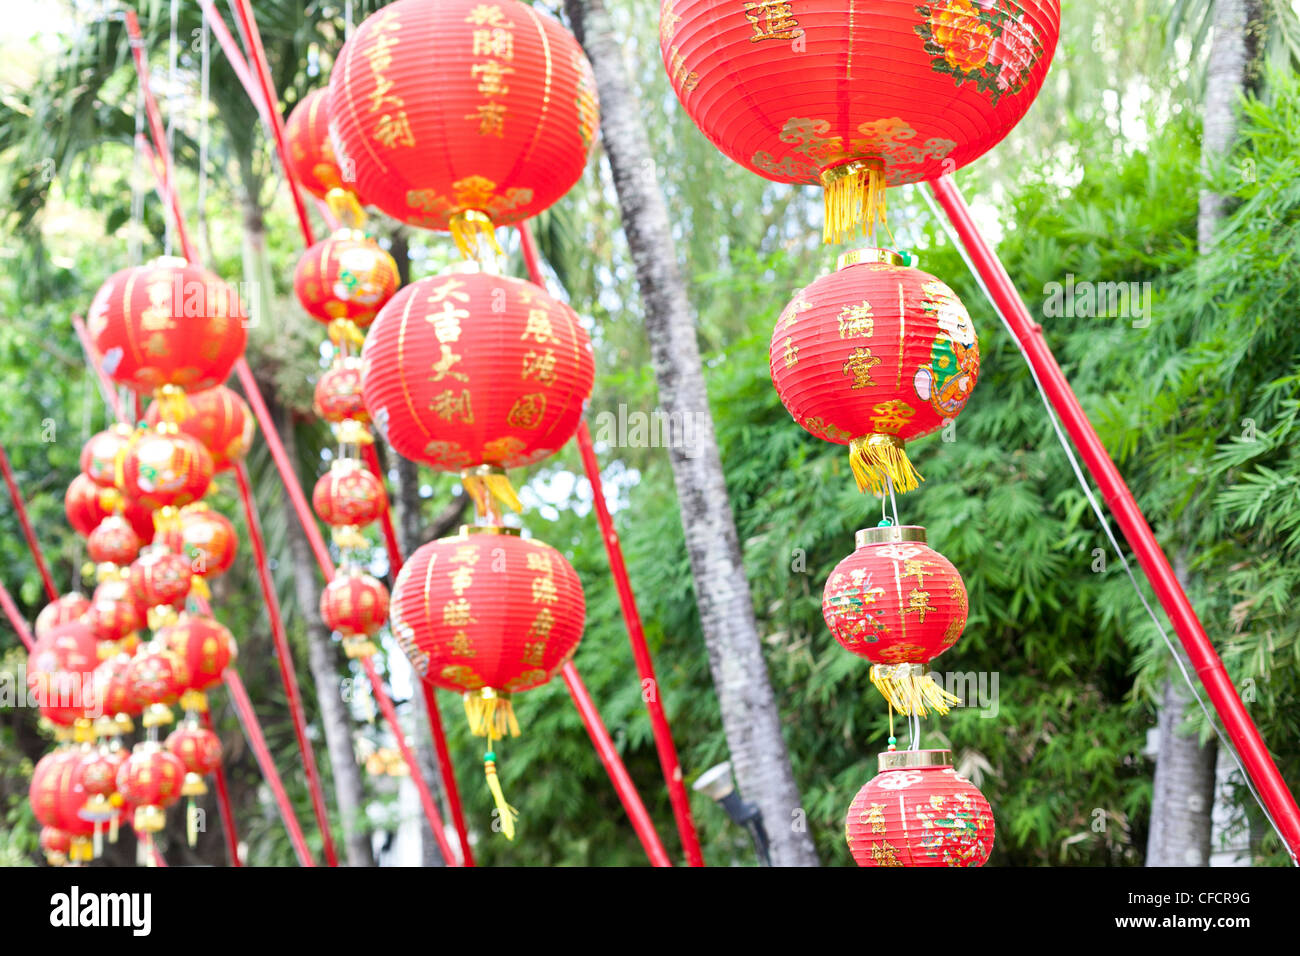 Chinese red lanterns in front of bamboo plants, Phuket, Thailand, Asia Stock Photo